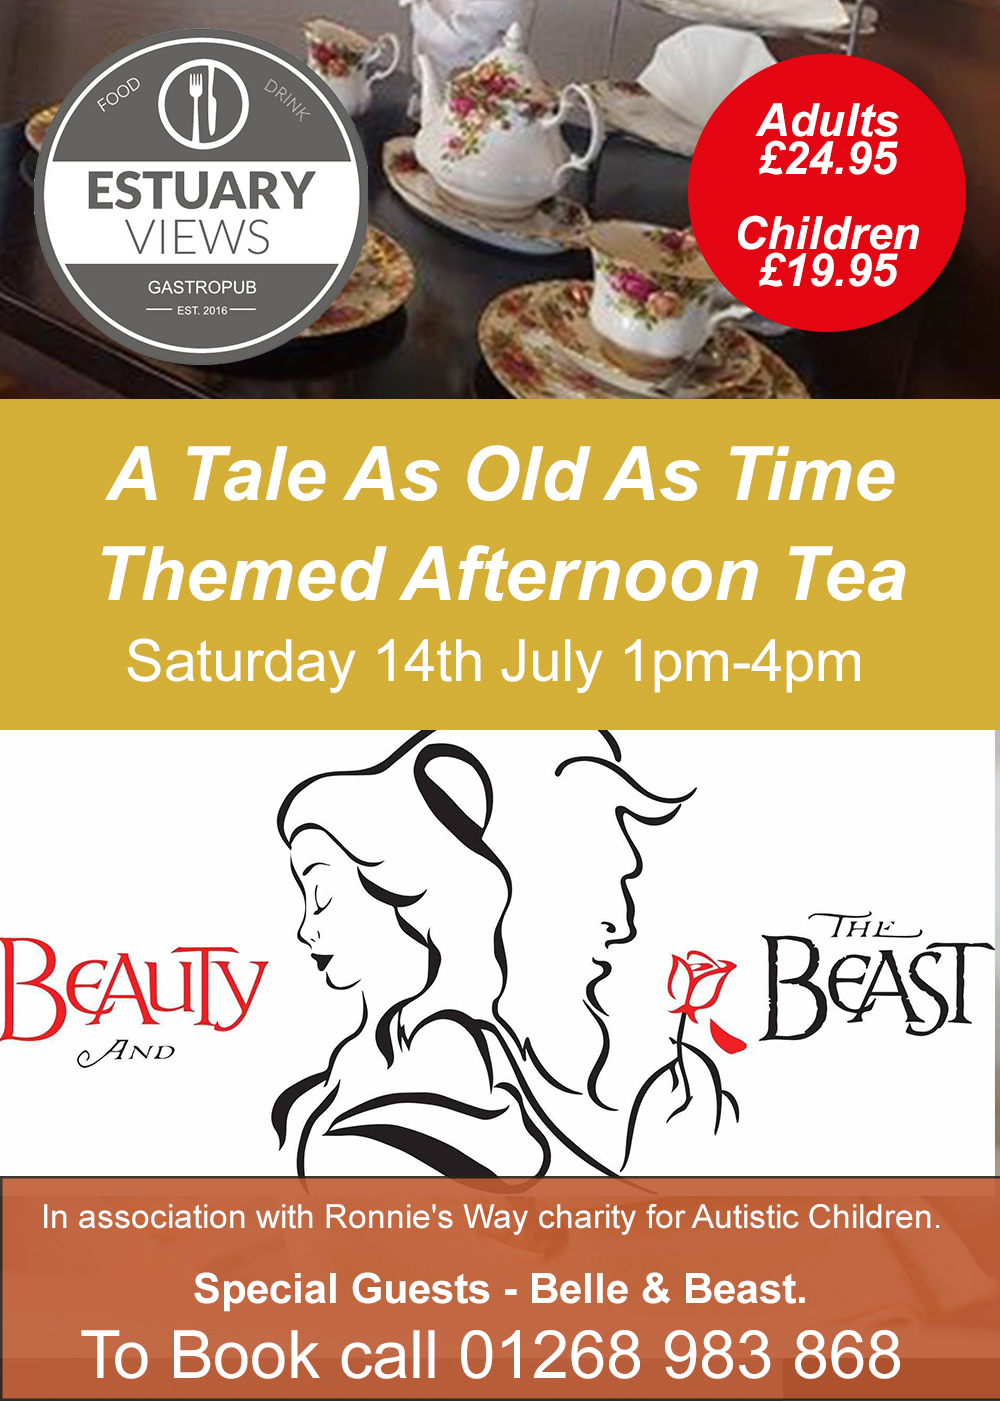 A Tale As Old As Time Beauty & The Beast Themed afternoon Tea